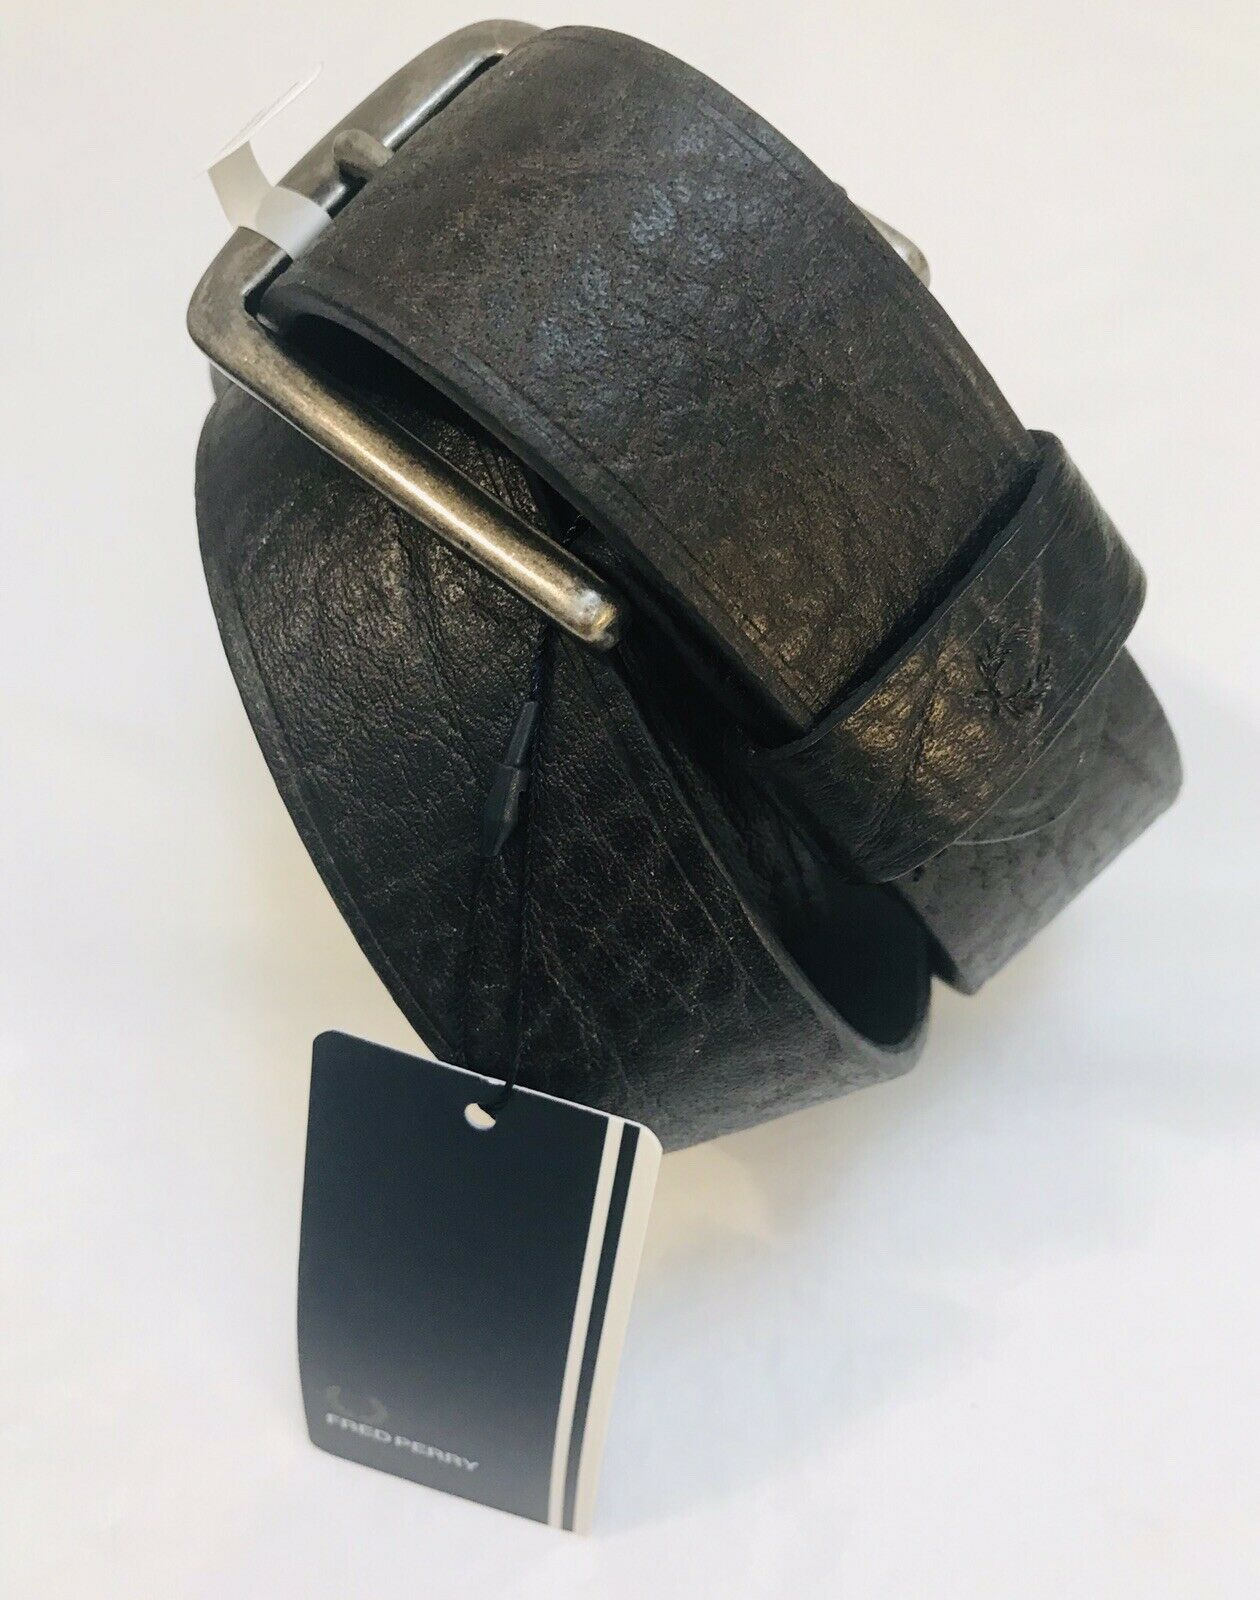 Frot Perry Tumbled Leather Belt Chocolate 32' 32' 32' | Ruf zuerst  6518de